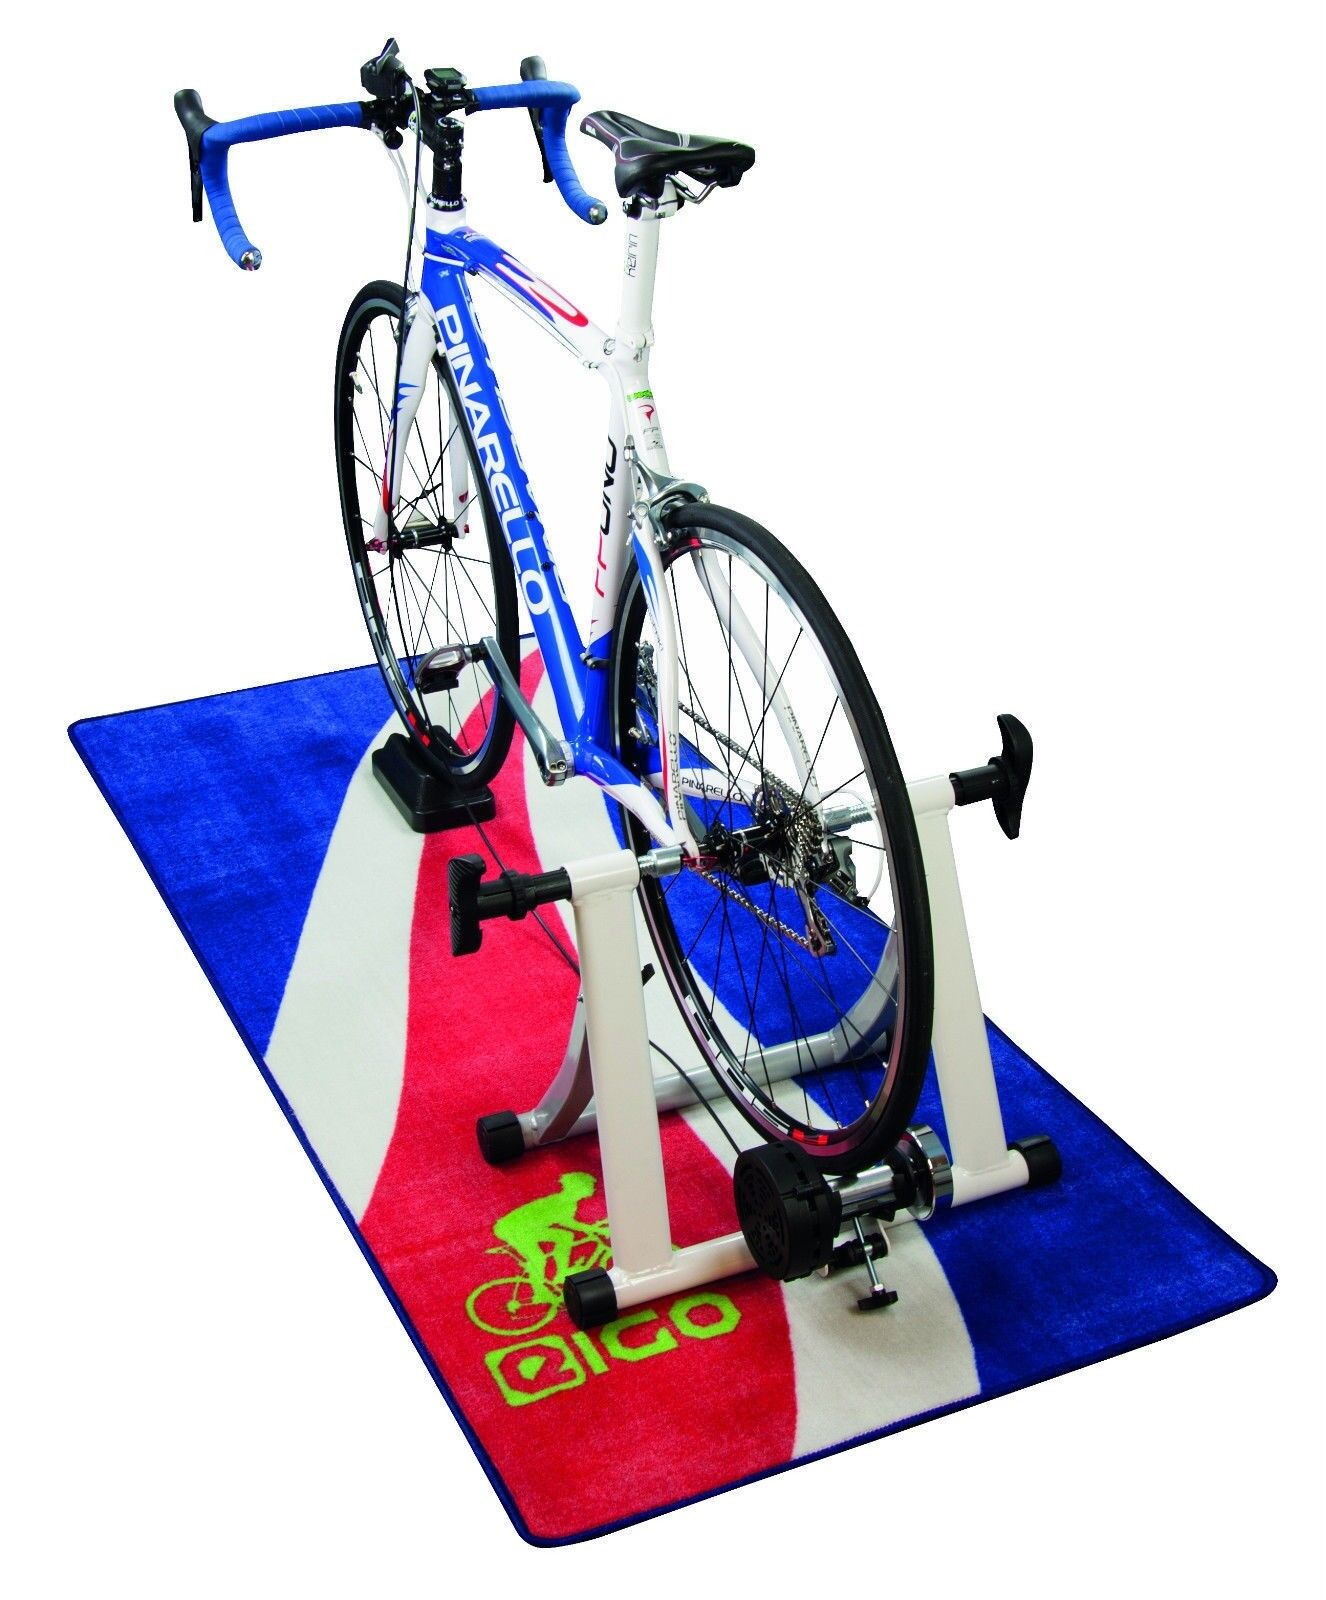 NEW EIGO TURBO TRAINER FLOOR MAT blueeE FLOW - CYCLE BIKE BICYCLE TRIATHLON